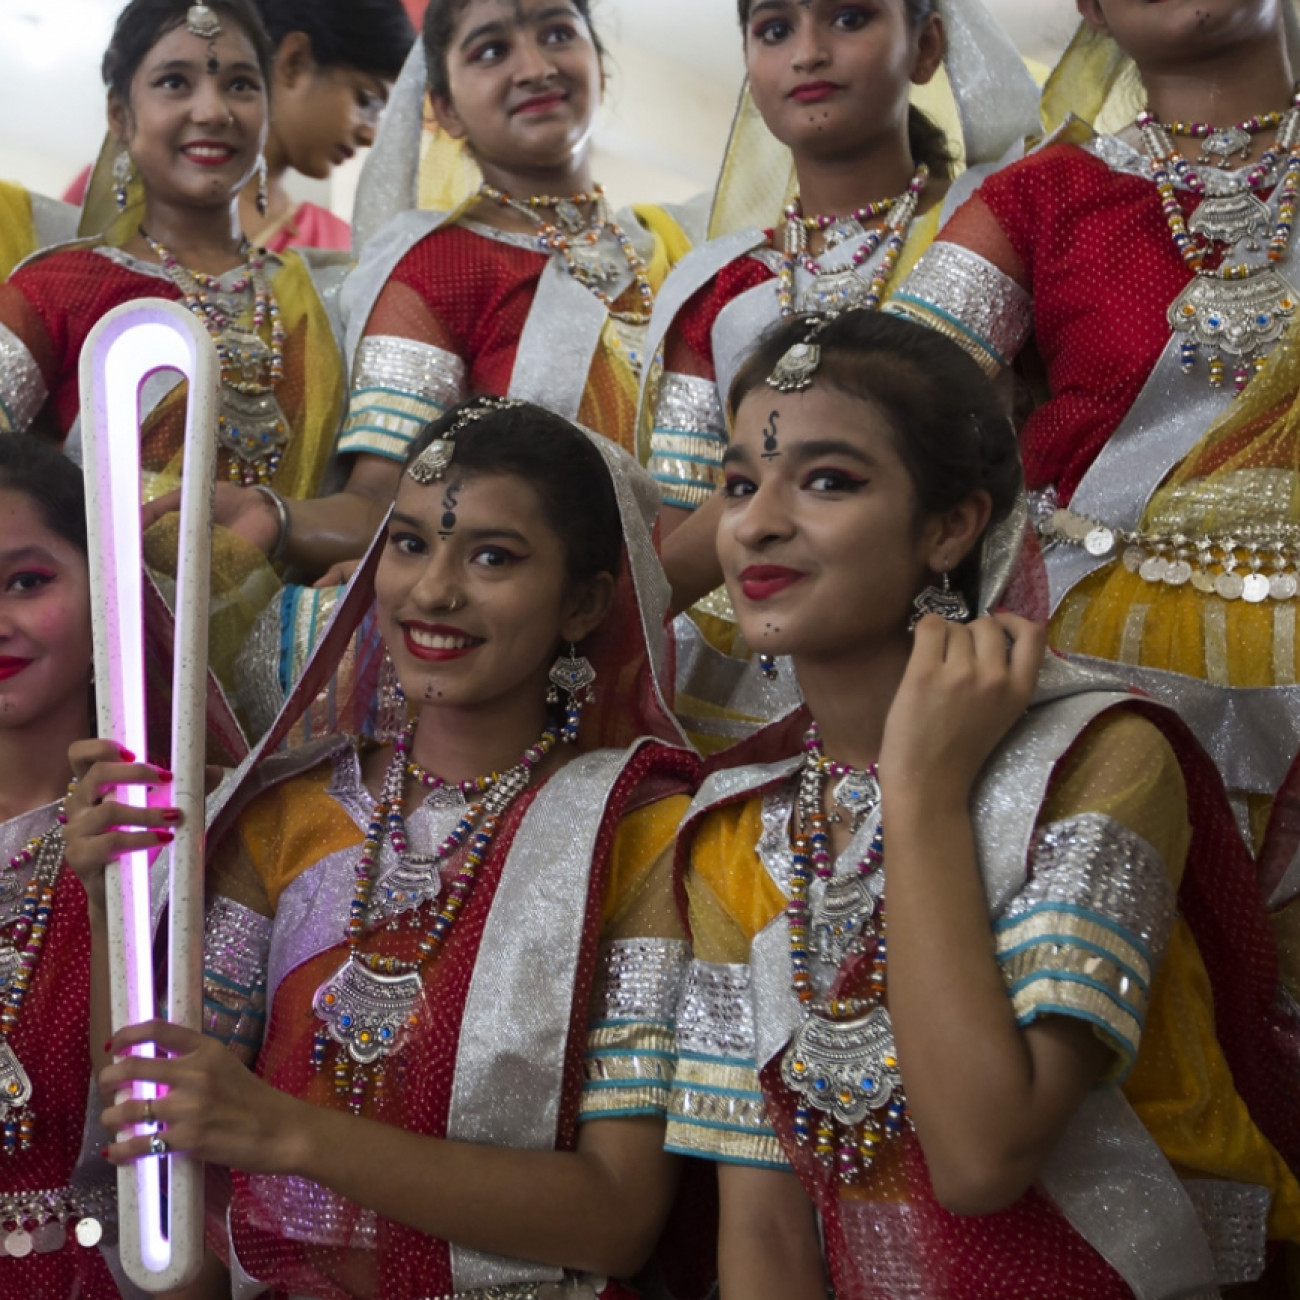 Dancers with the Baton at a welcoming ceremony in Rudrapur